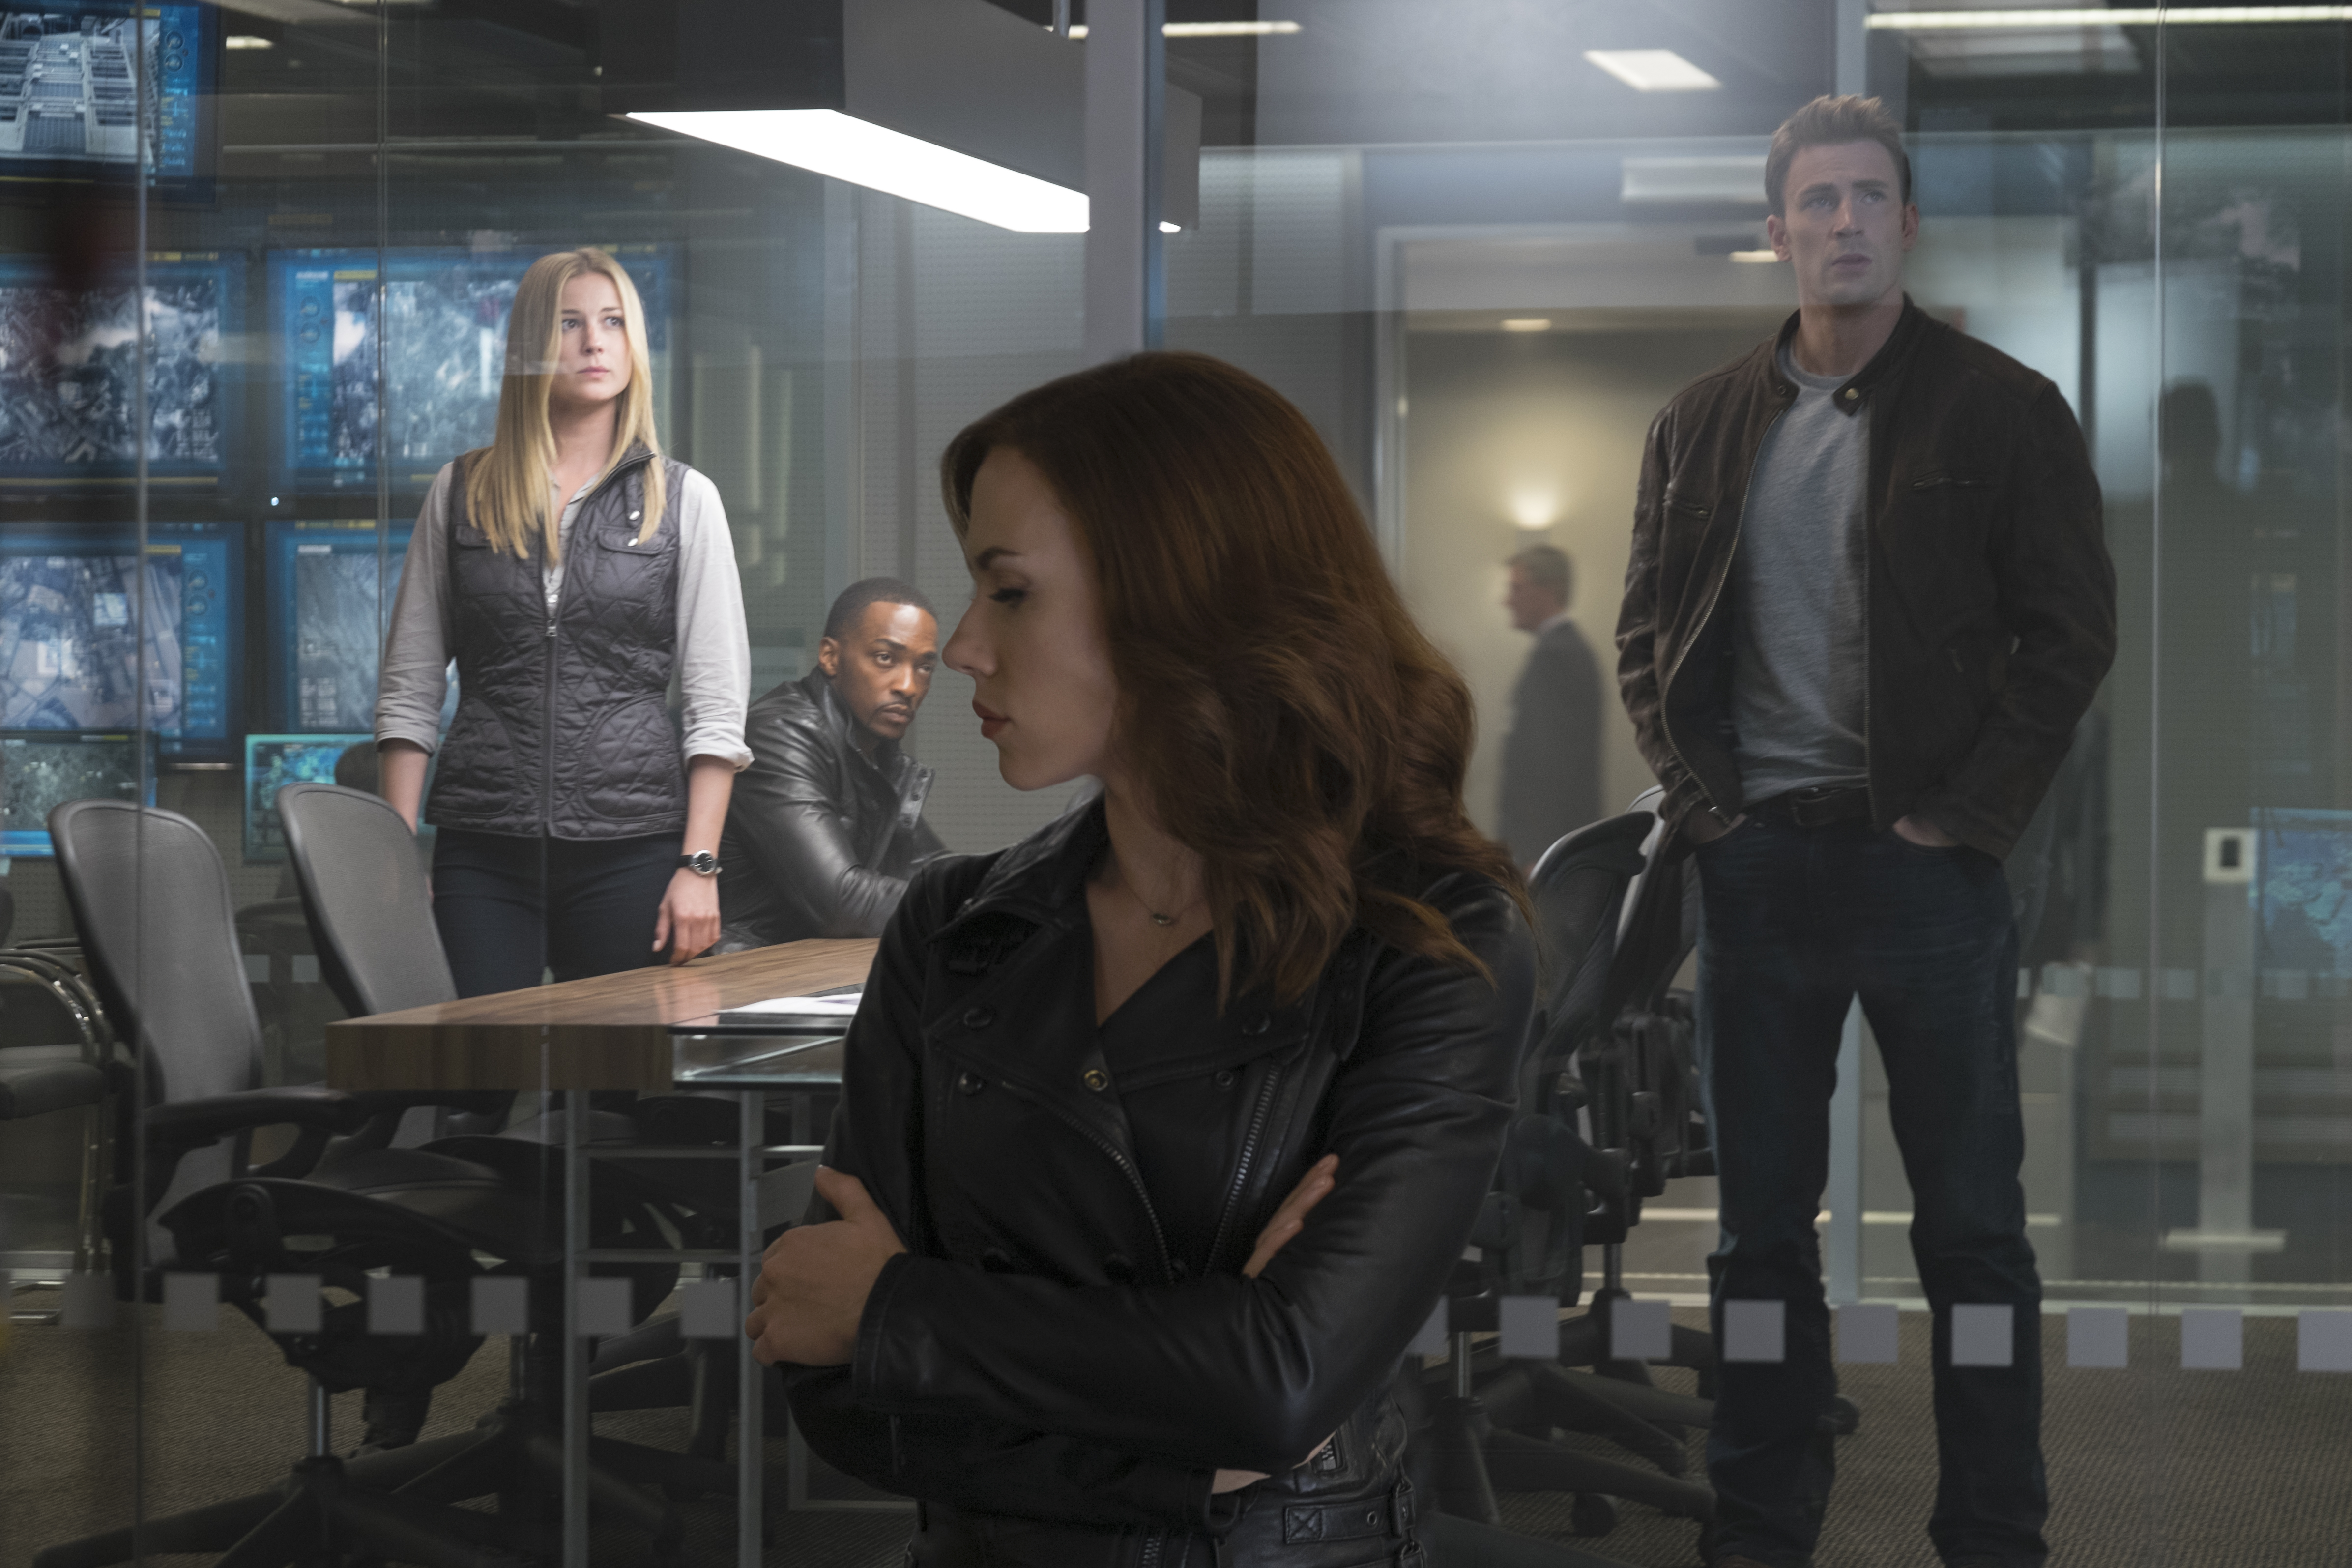 Marvel's Captain America: Civil War L to R: Sharon Carter/Agent 13 (Emily VanCamp), Sam Wilson/Falcon (Anthony Mackie), Natasha Romanoff/Black Widow (Scarlett Johansson), and Steve Rogers/Captain America (Chris Evans) Photo Credit: Zade Rosenthal © Marvel 2016